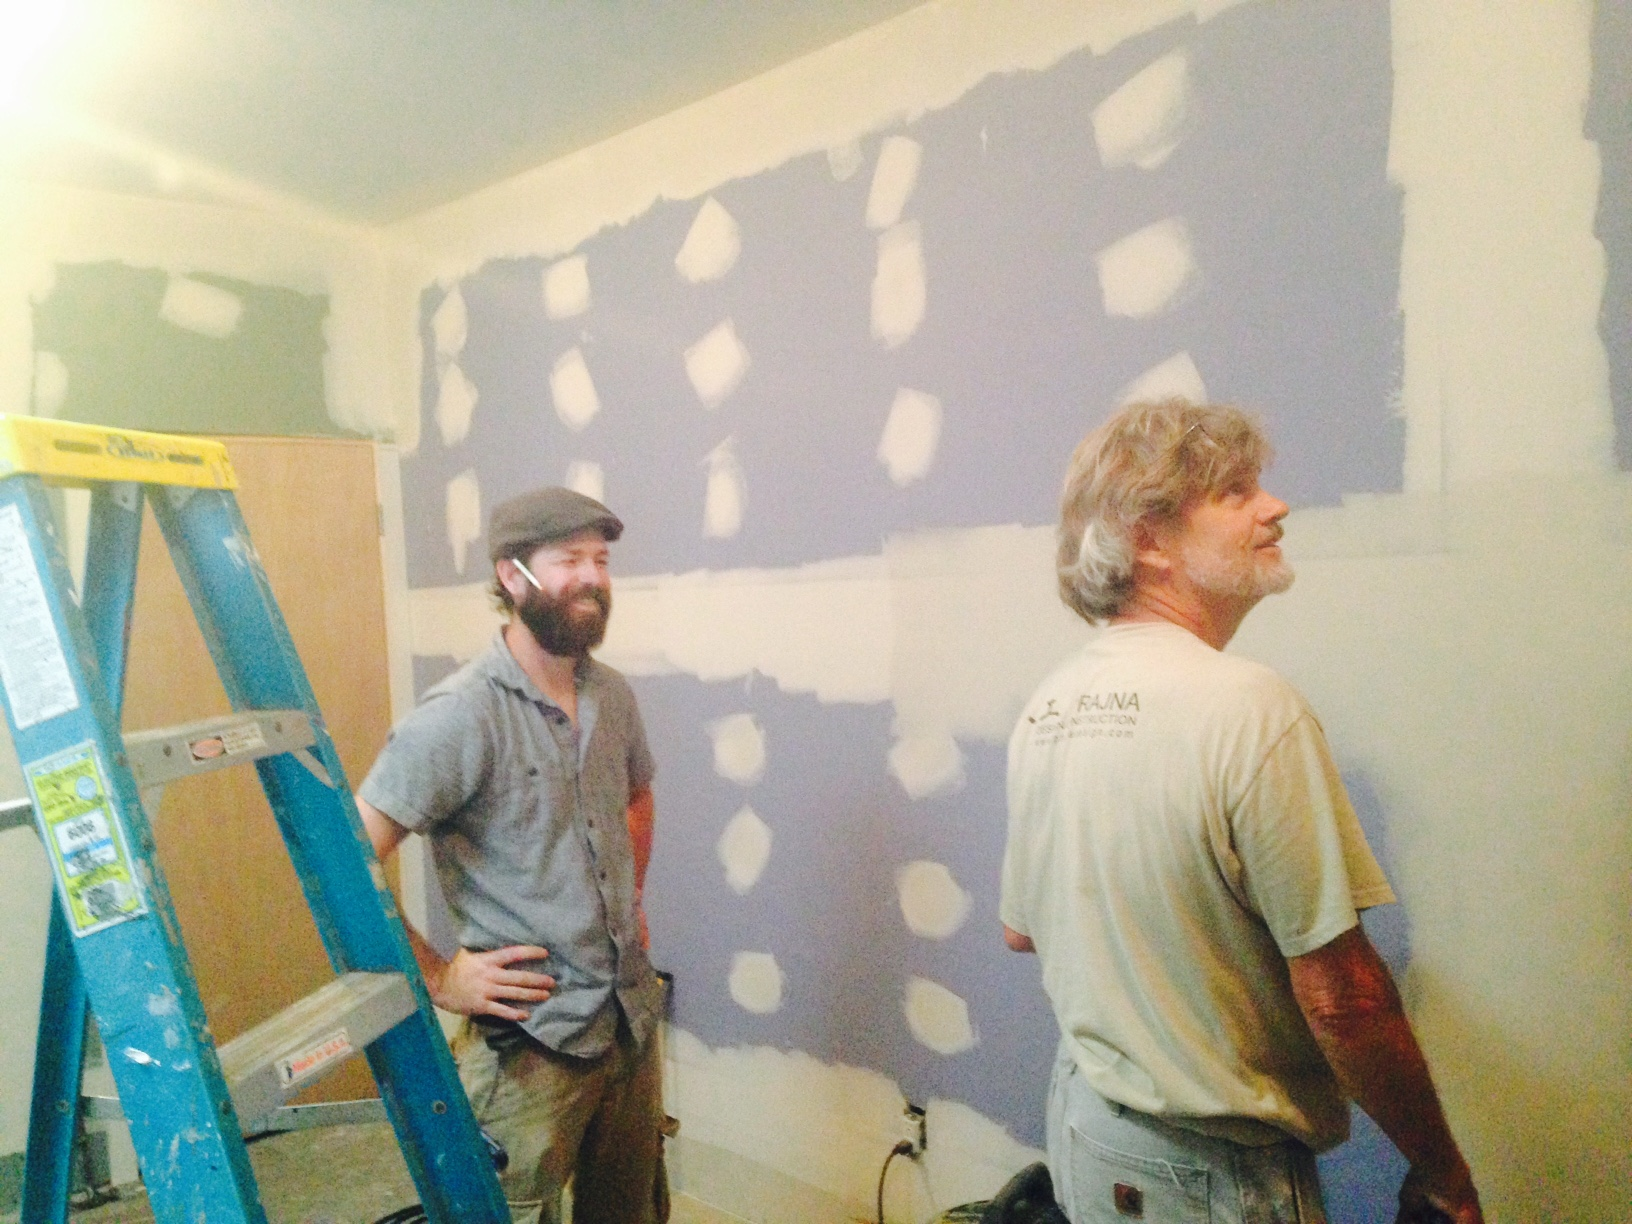 Prajna Construction owner David Wittmer (right) and fellow worker John assess the progress in one of the two sensory deprivation tank rooms at Source on High, Lexington KY.